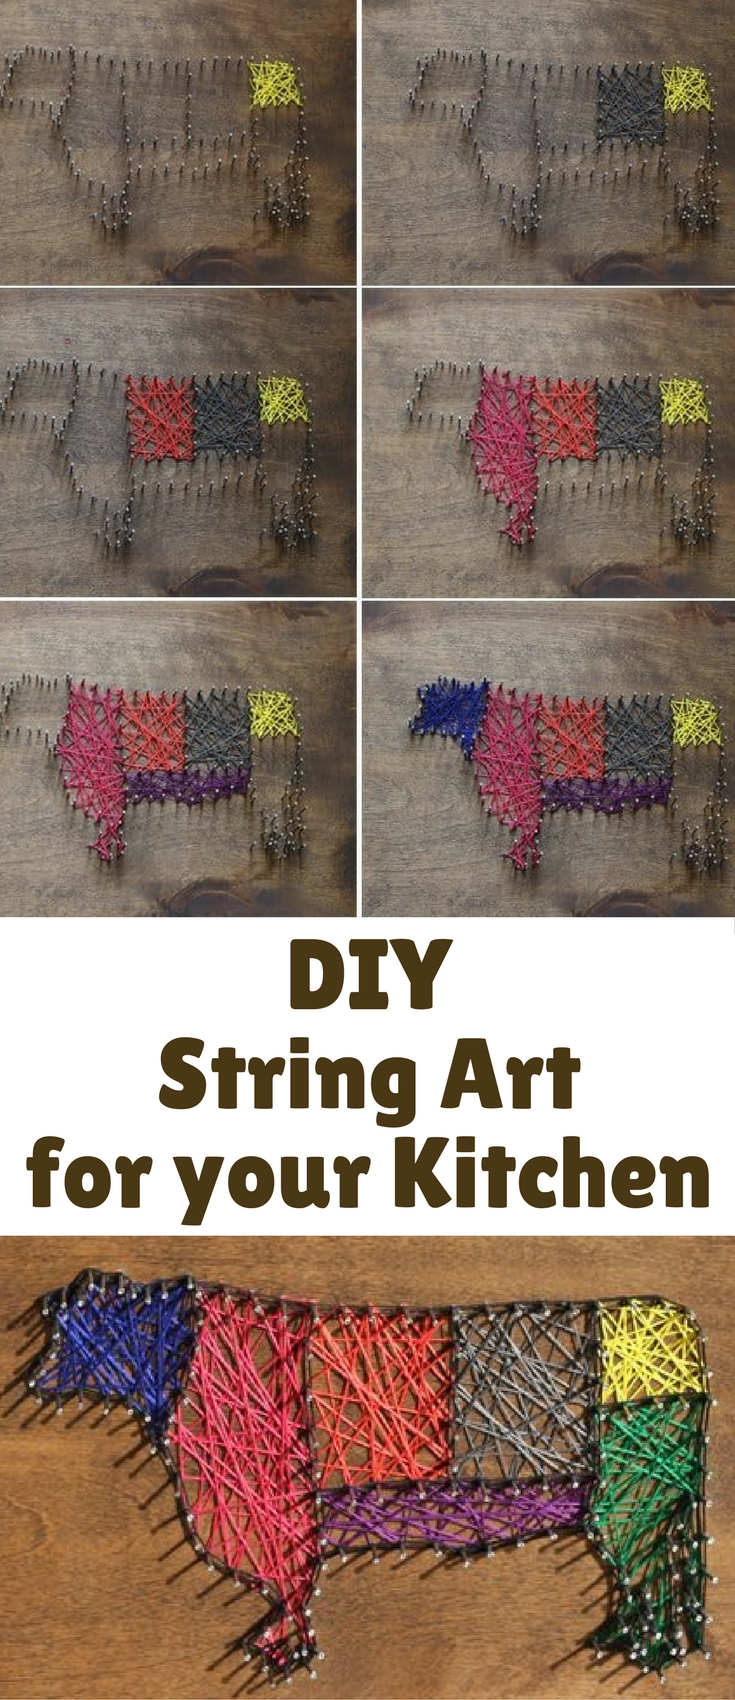 Well, crafting also results in something pretty awesome – in today's case, some awesome string art for my kitchen!